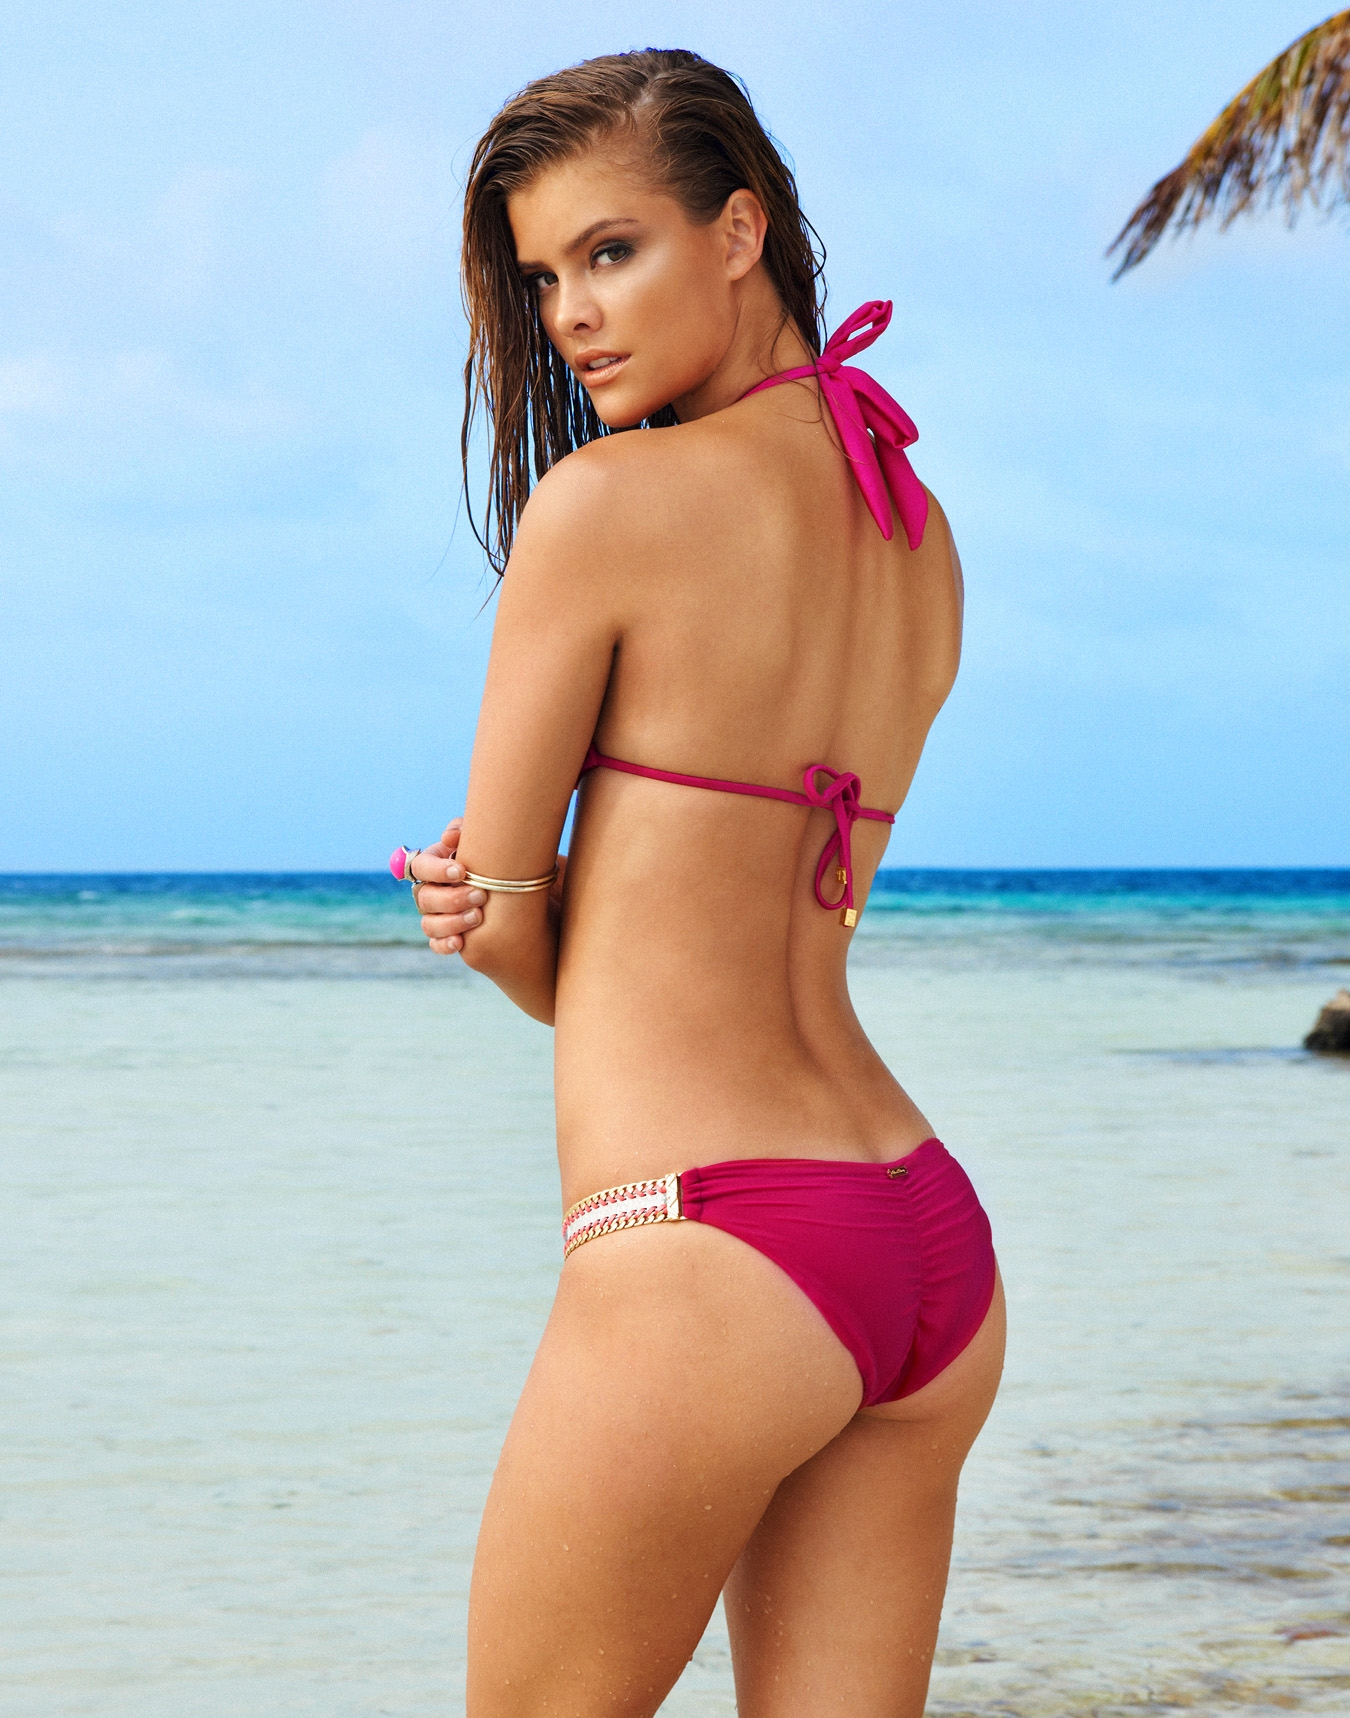 nina-agdal-beach-bunny-swimwear-2014-set-2-01